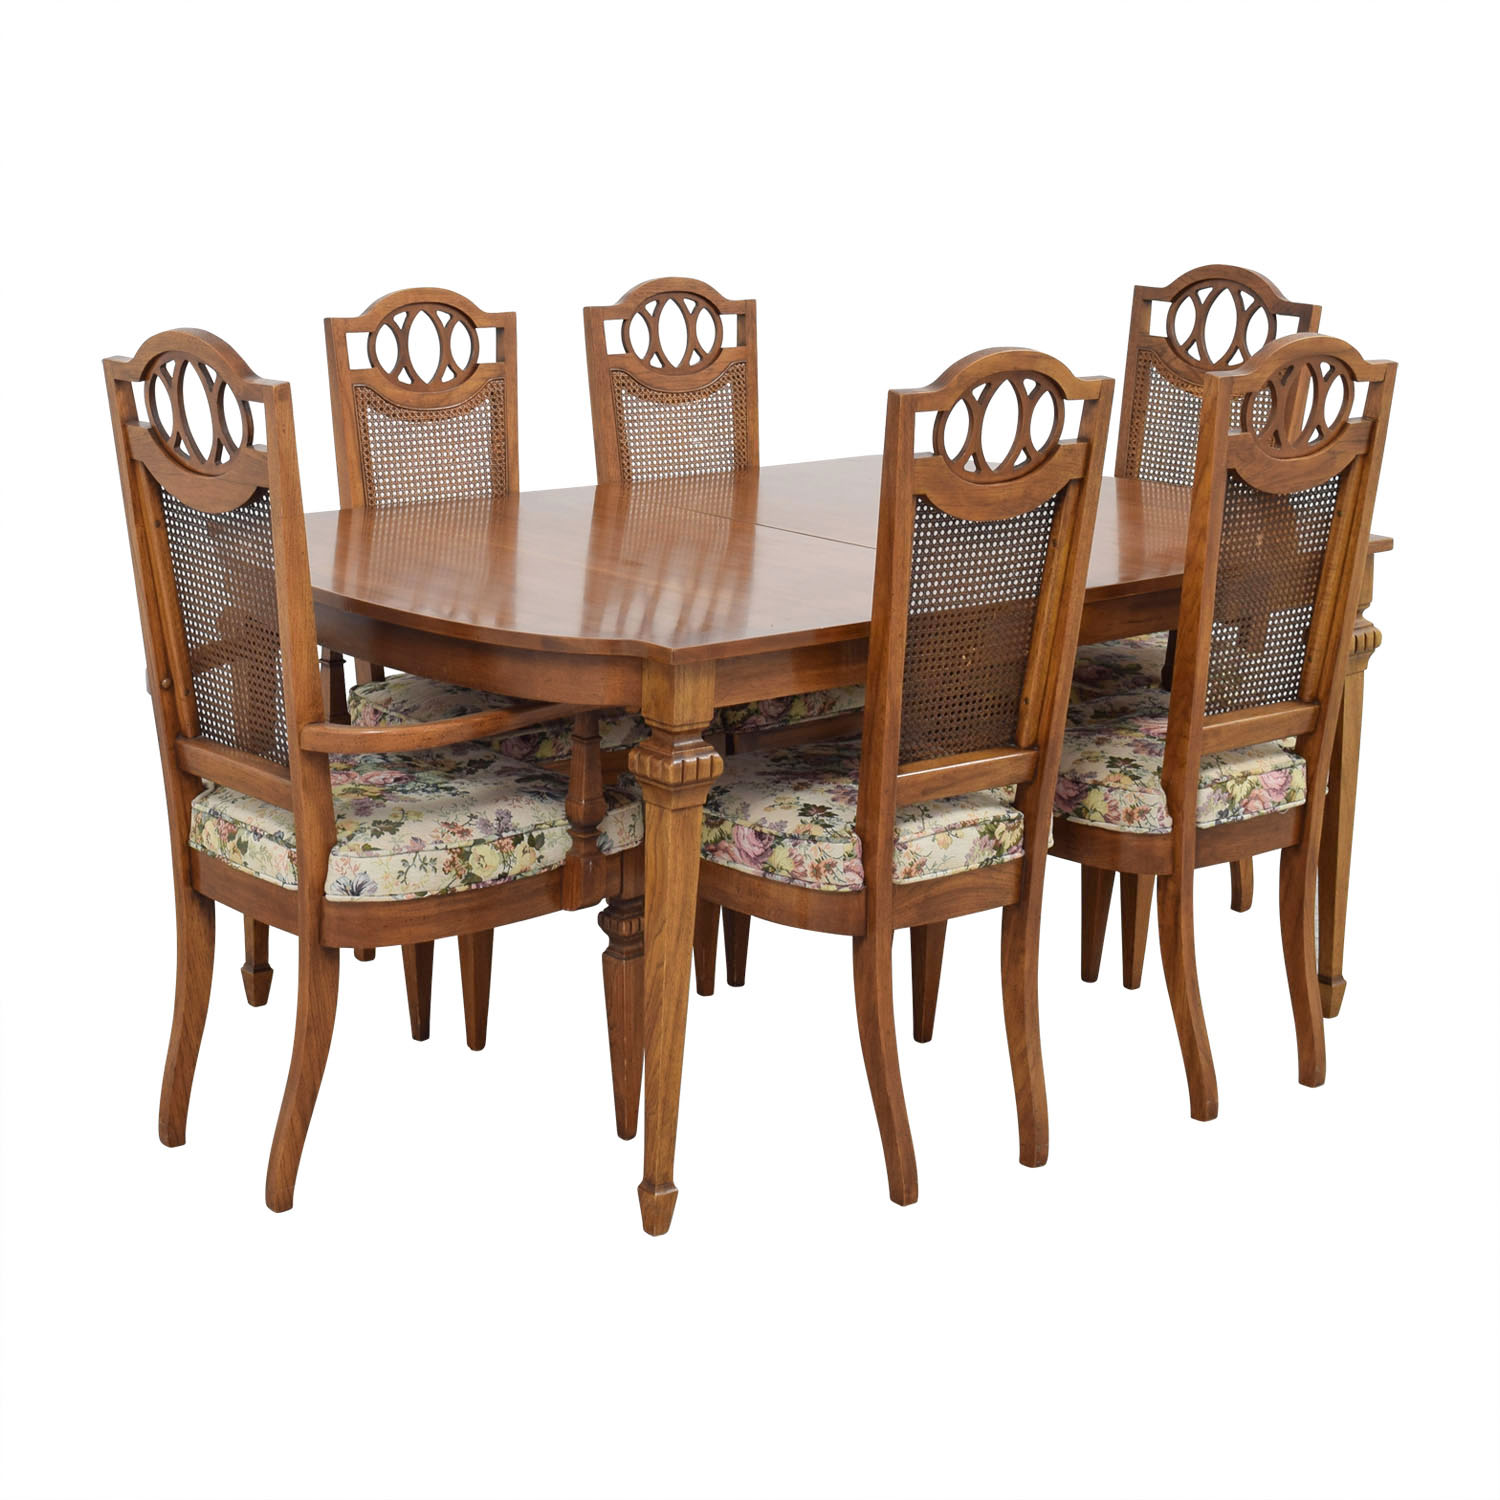 buy Italian Dining Set with Leaf Extensions and Floral Upholstered Chairs Dining Sets